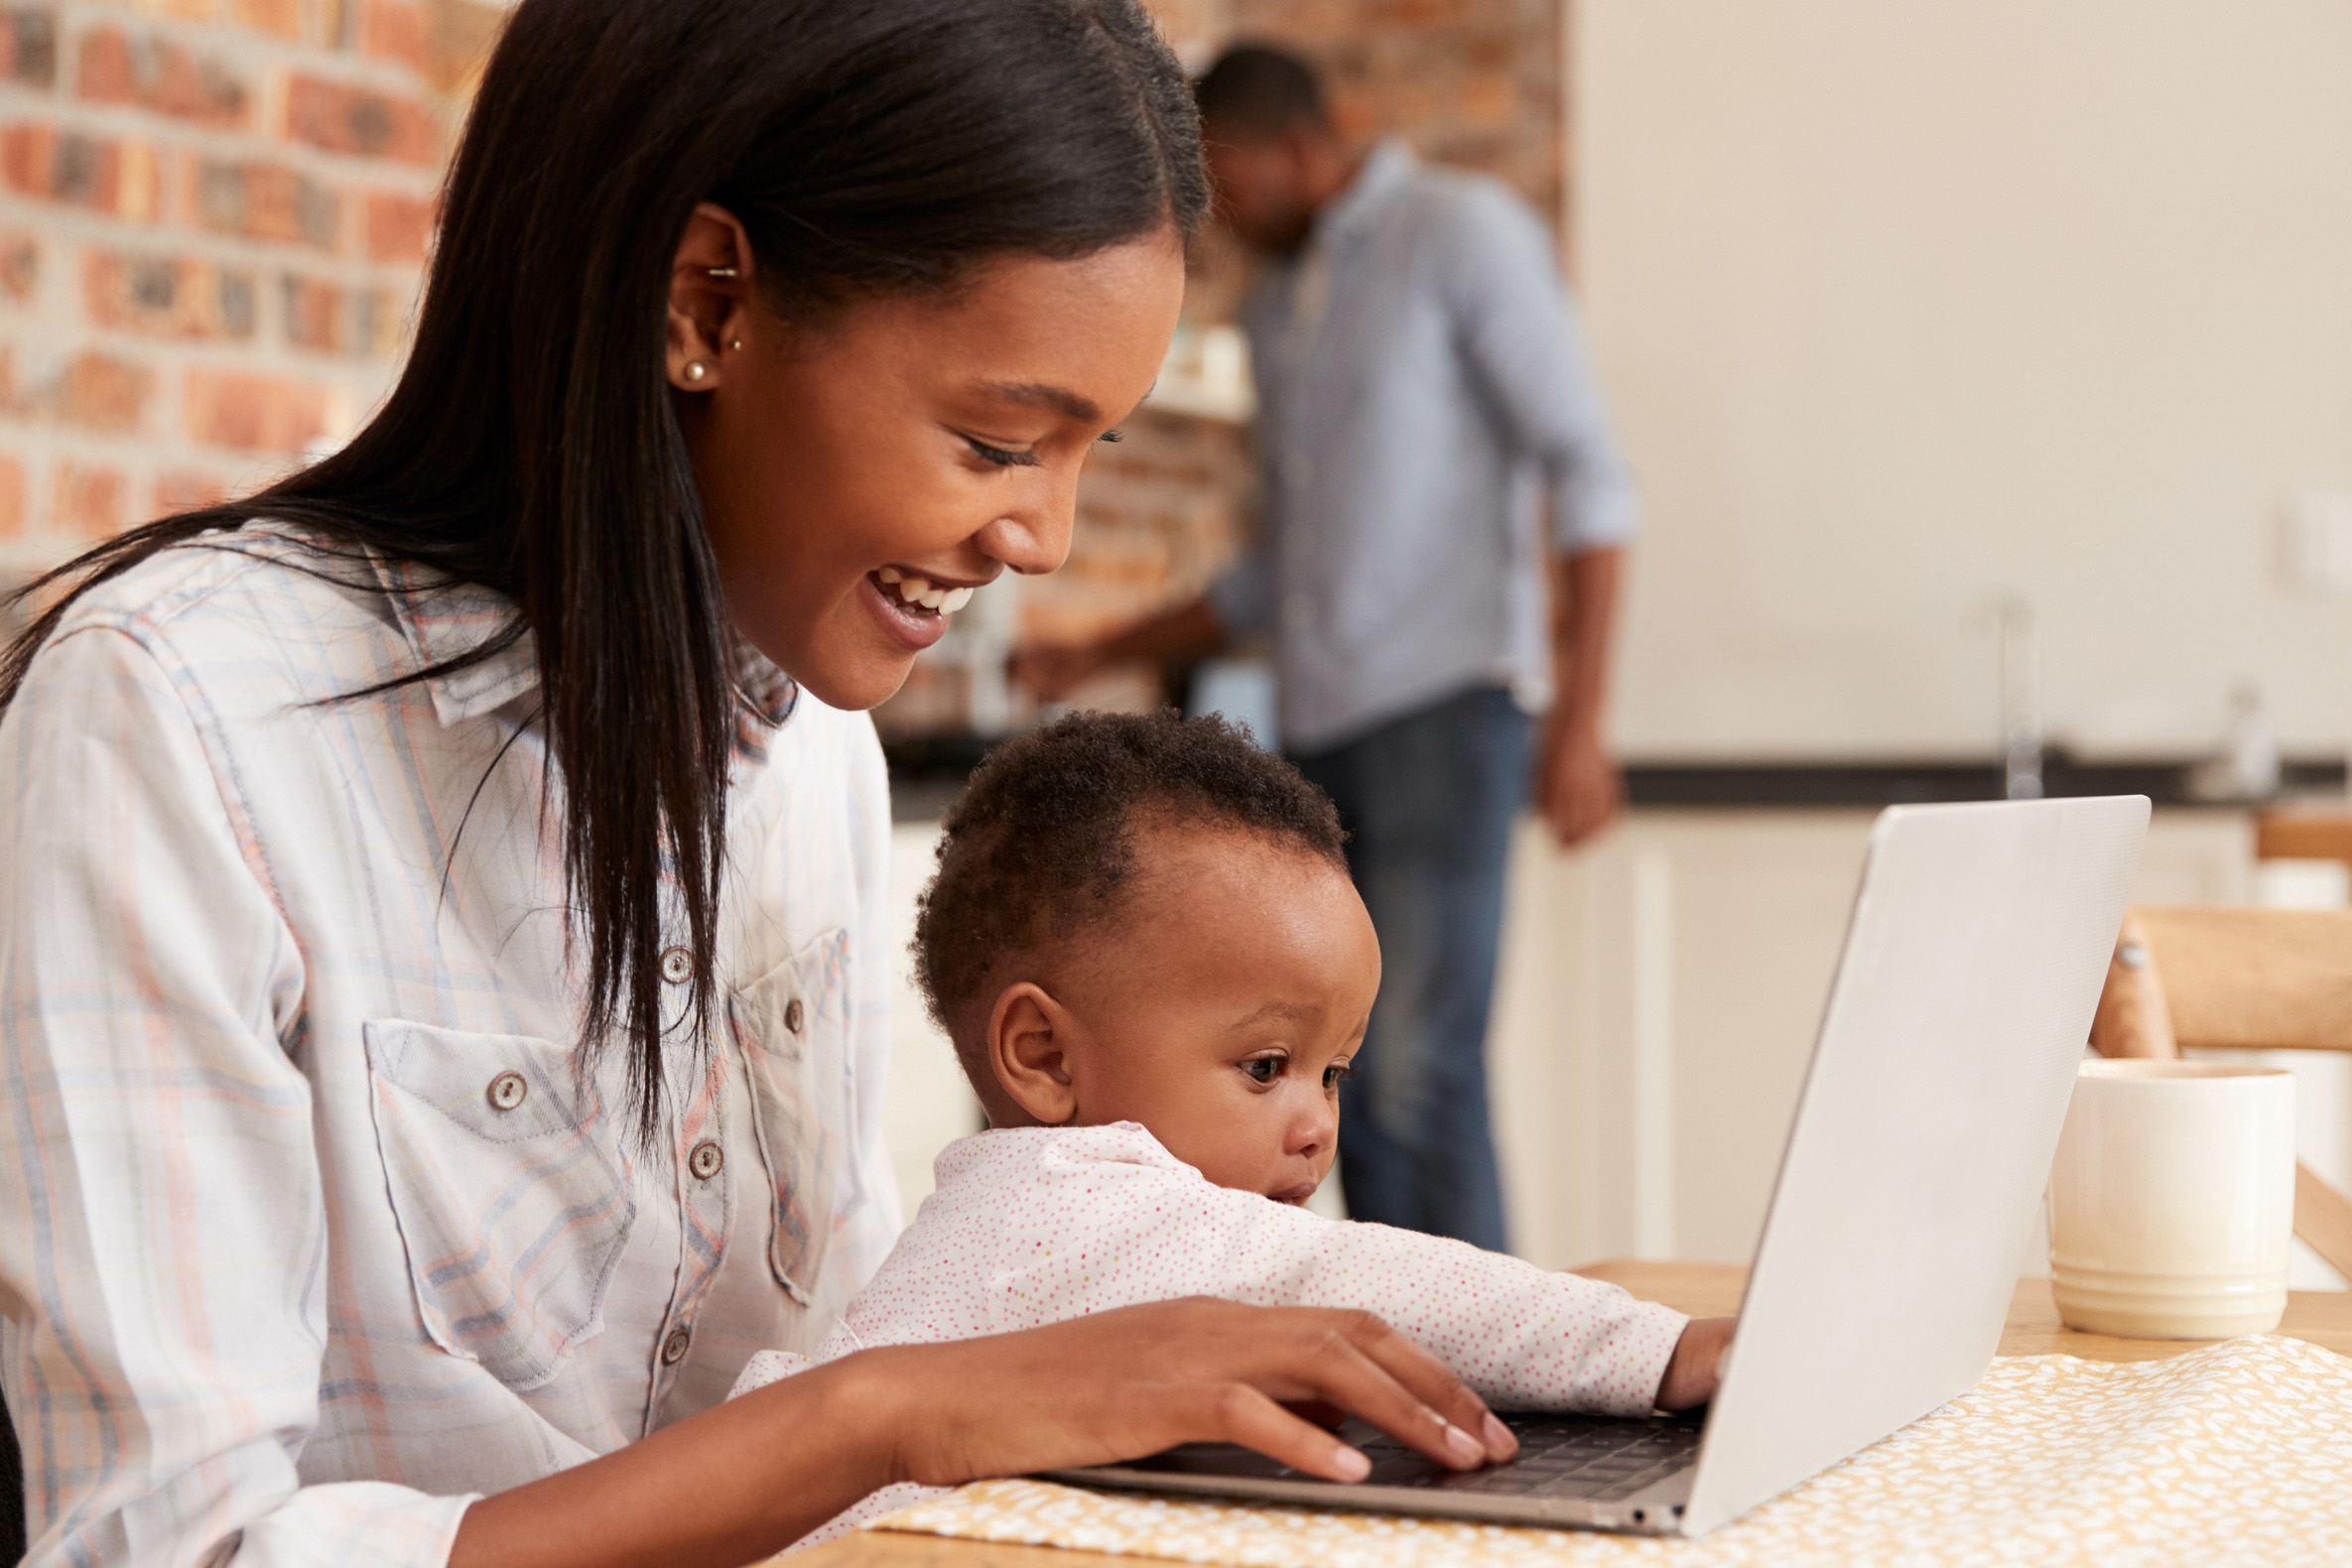 girl and child at computer